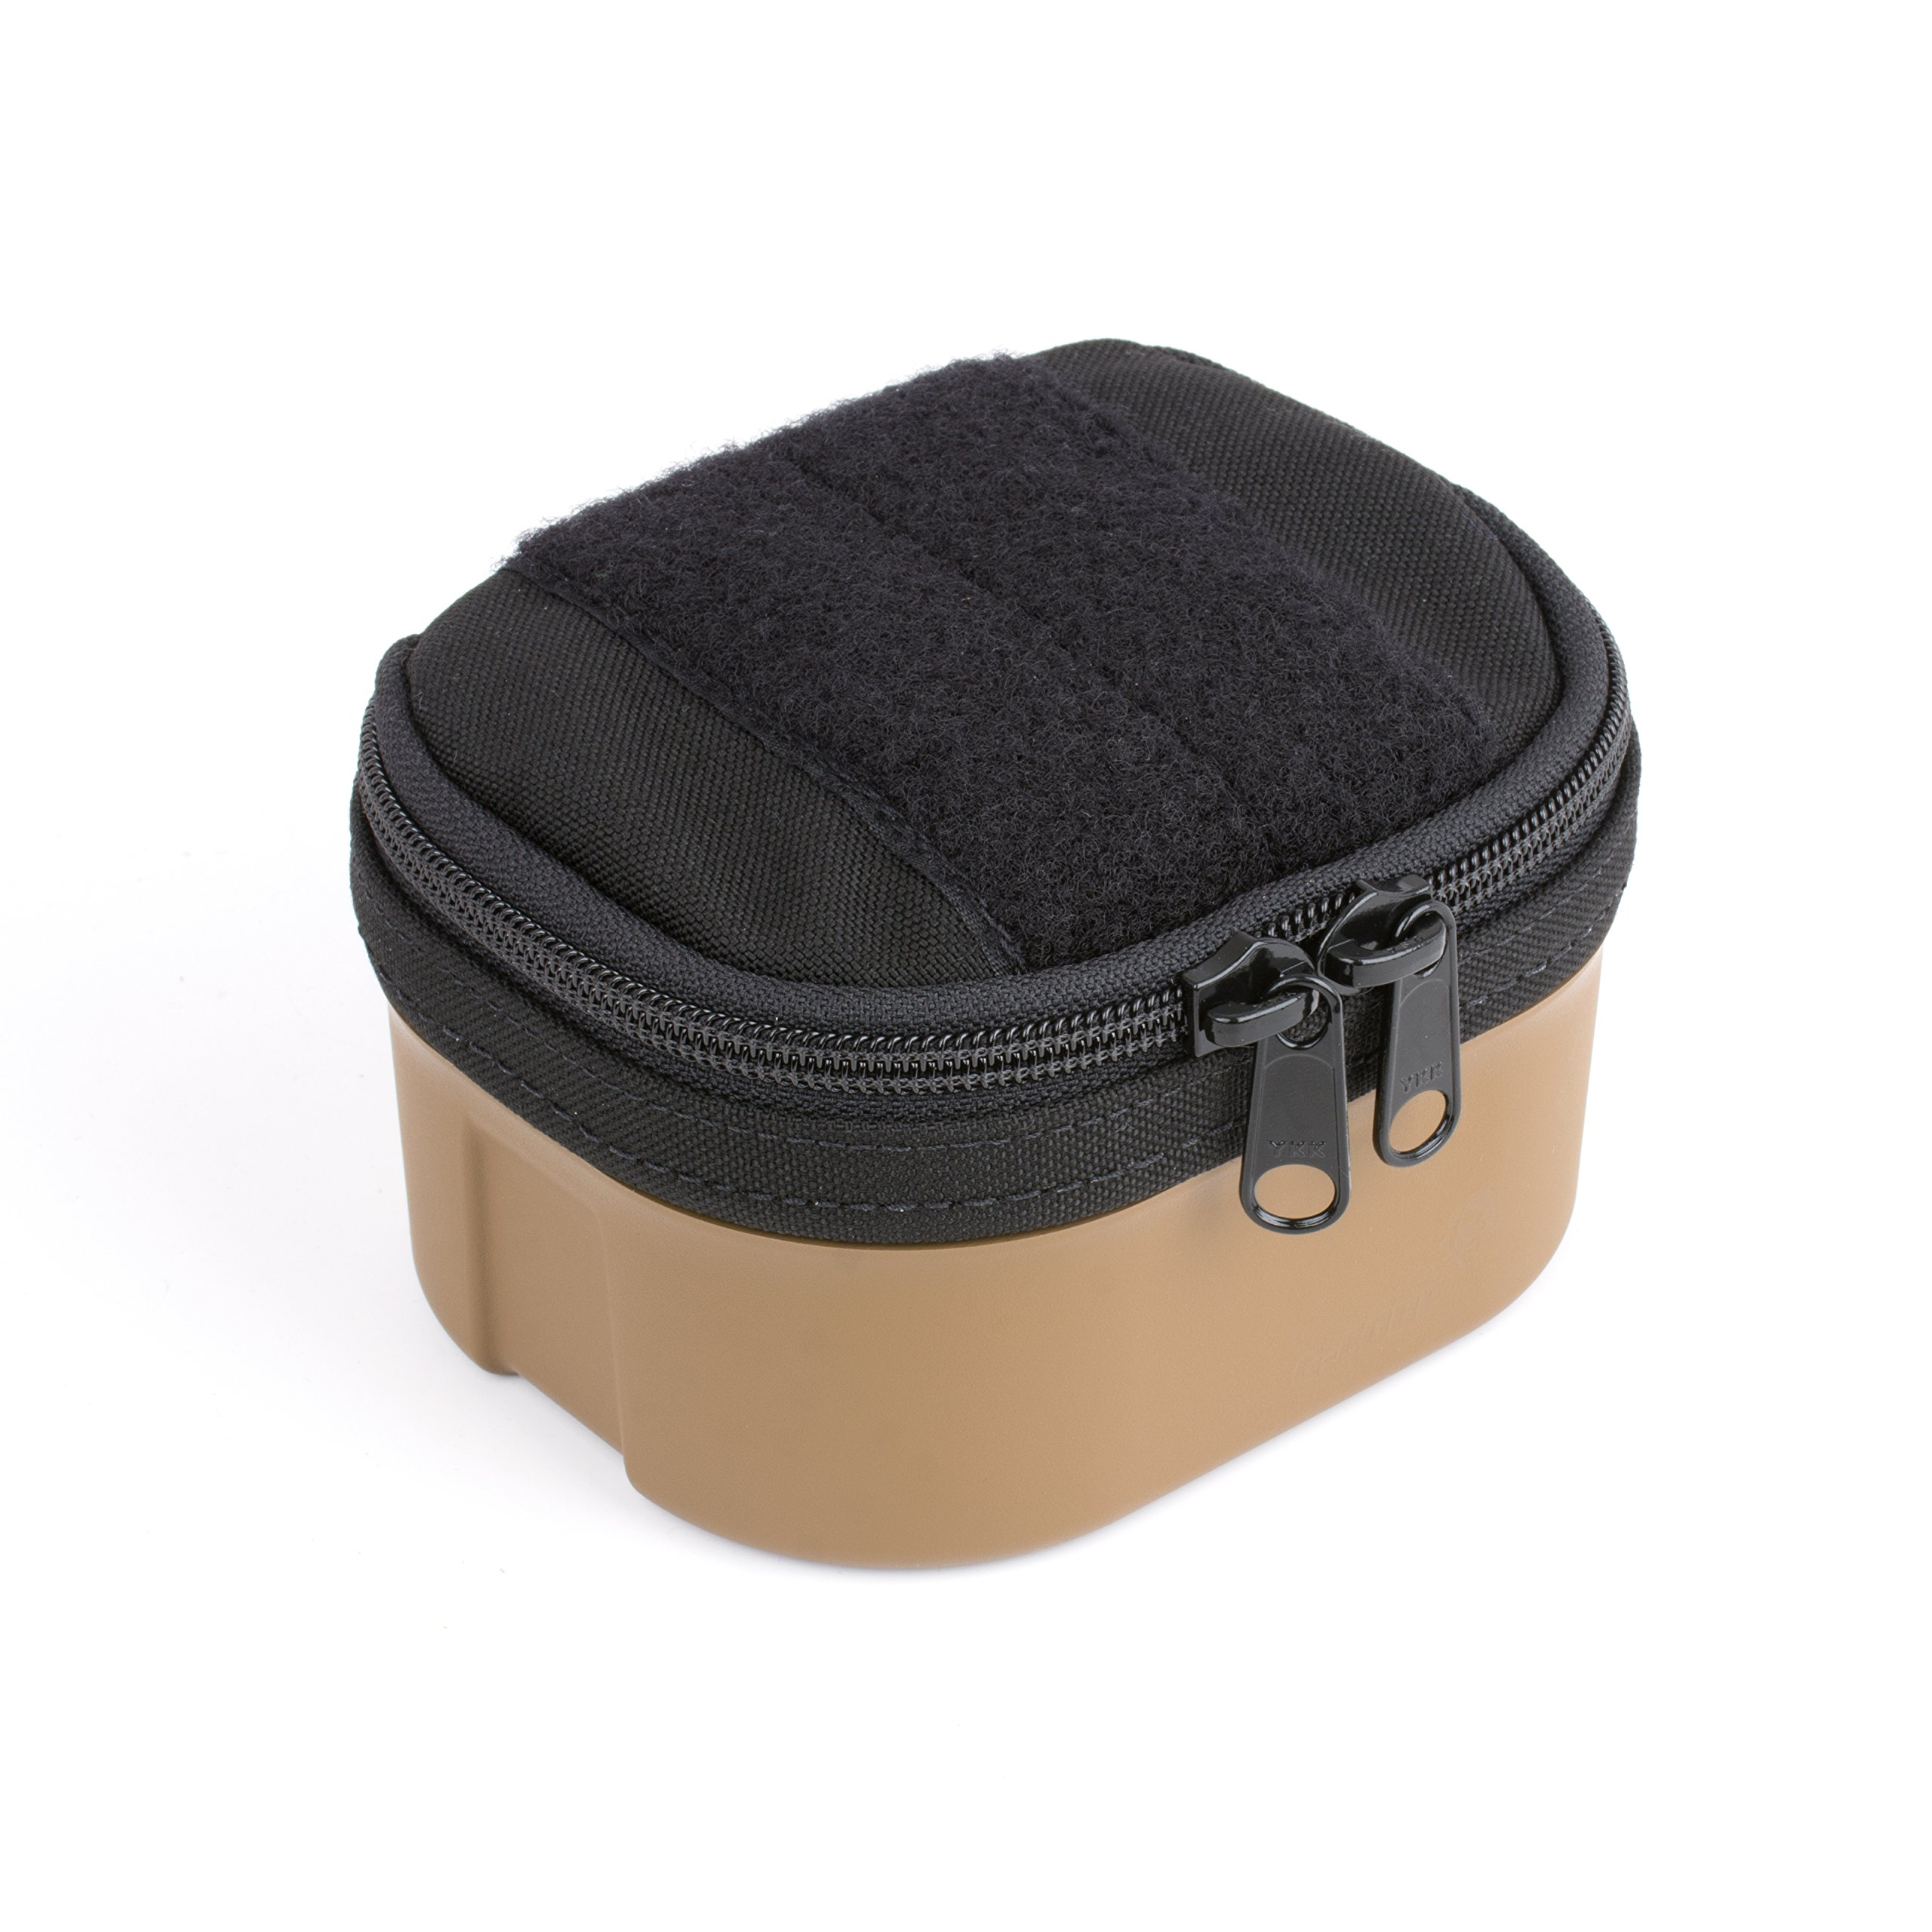 G-CODE Bang Box -Ammunition transport made simple! 100% Made in USA (black on tan)